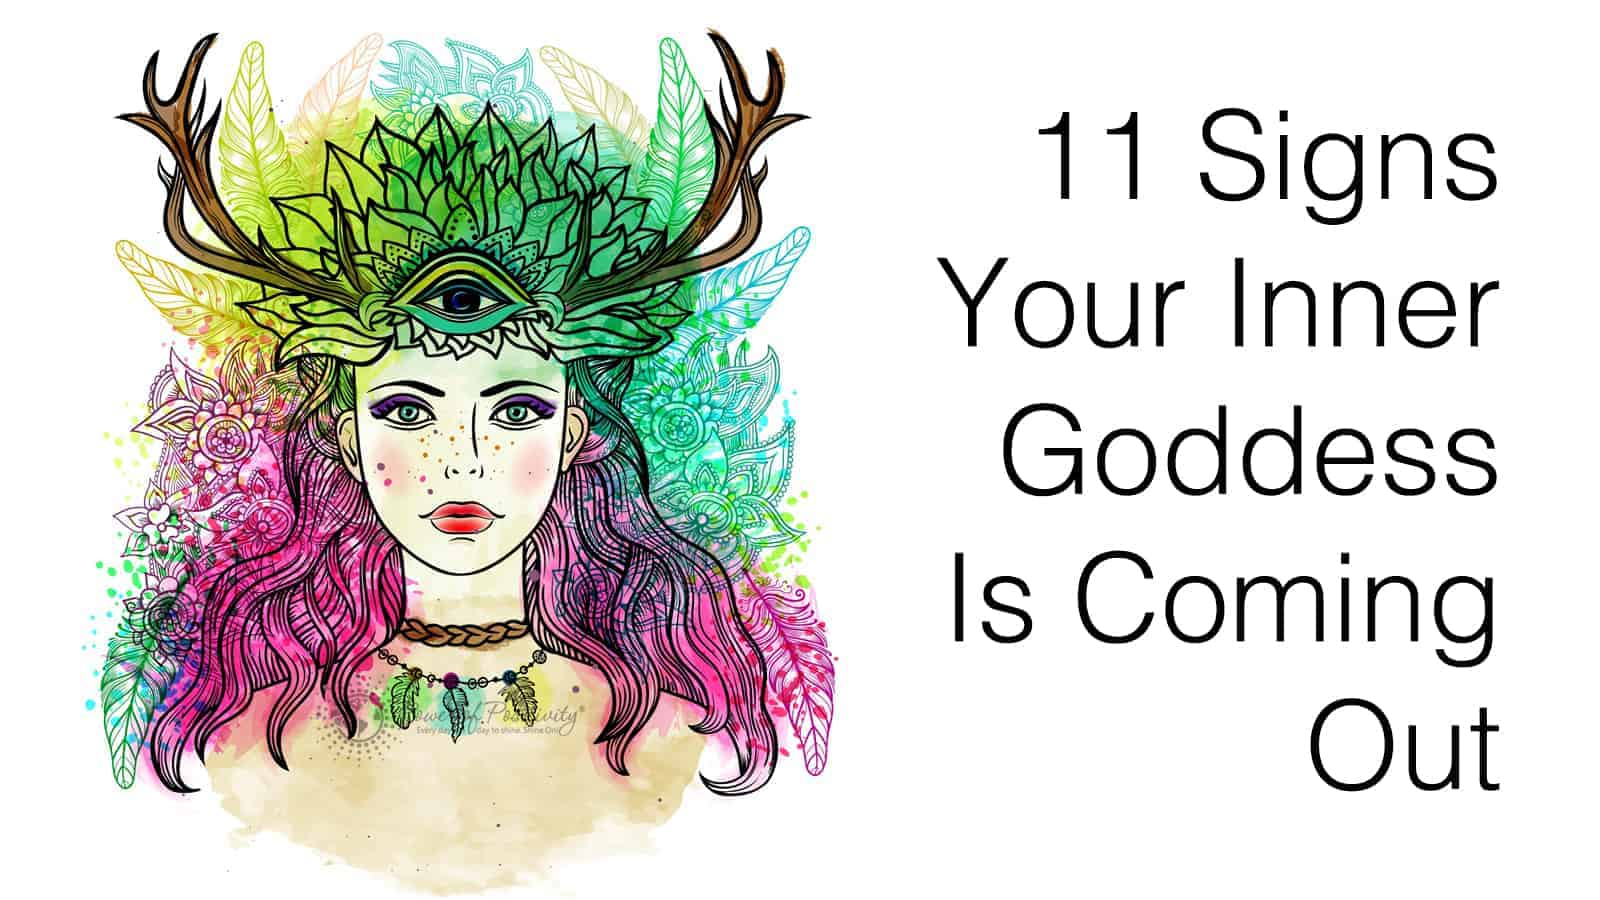 How to Find Your Inner Goddess